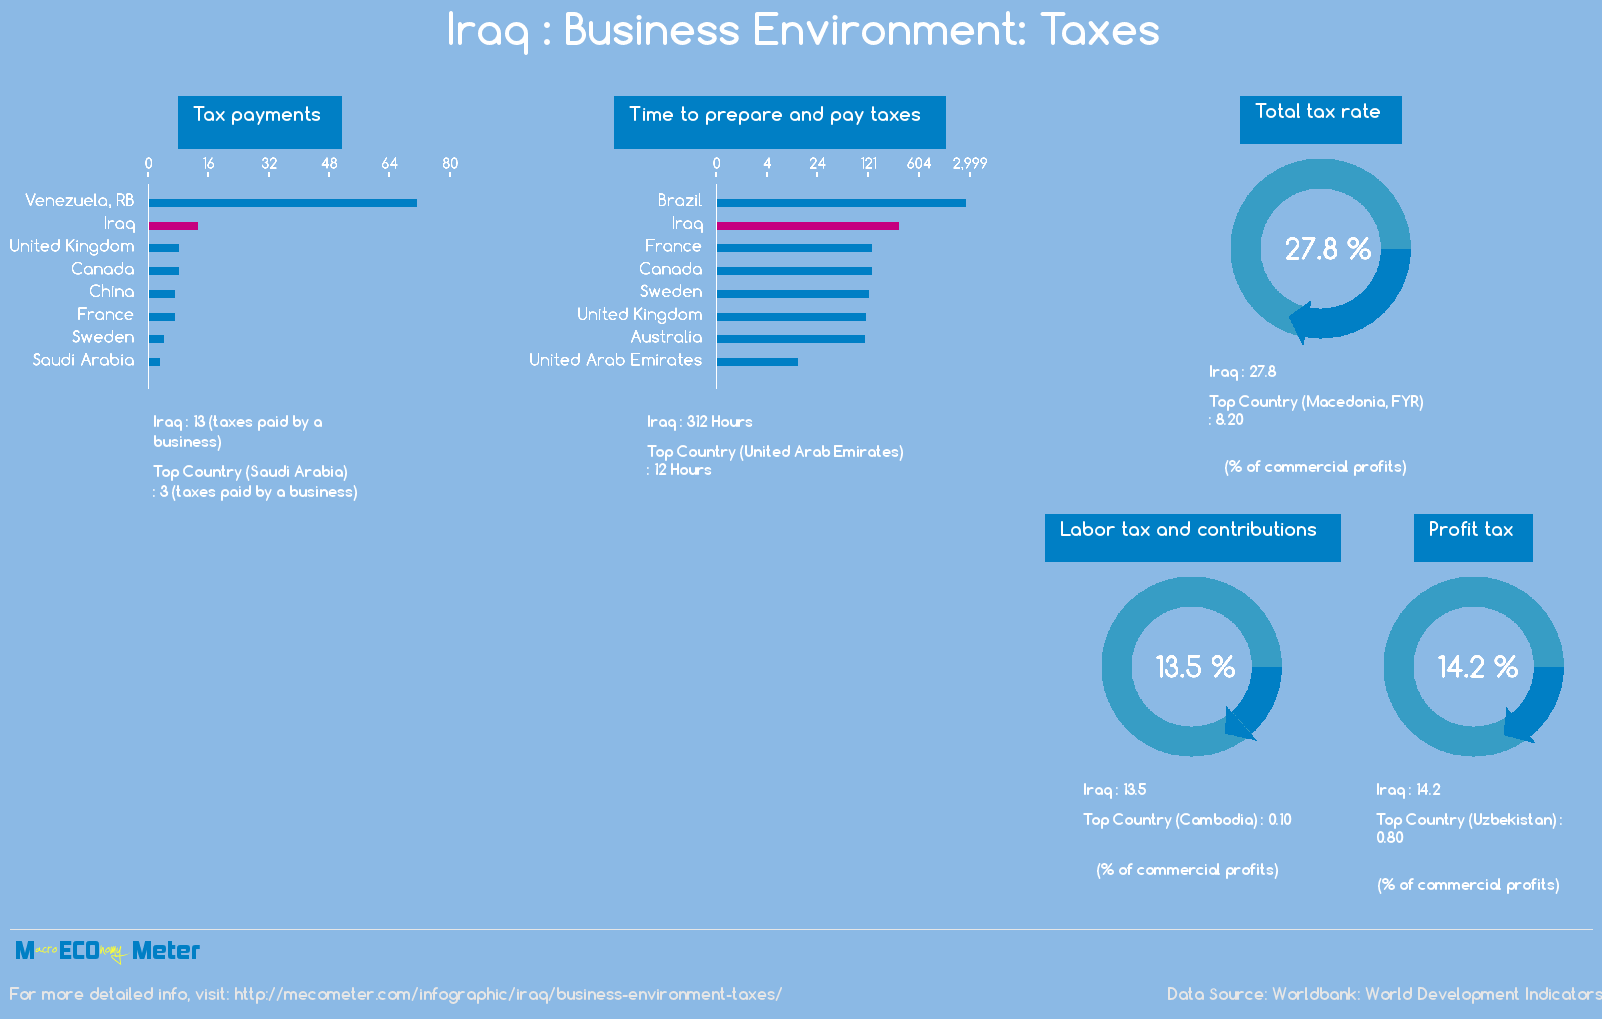 Iraq : Business Environment: Taxes